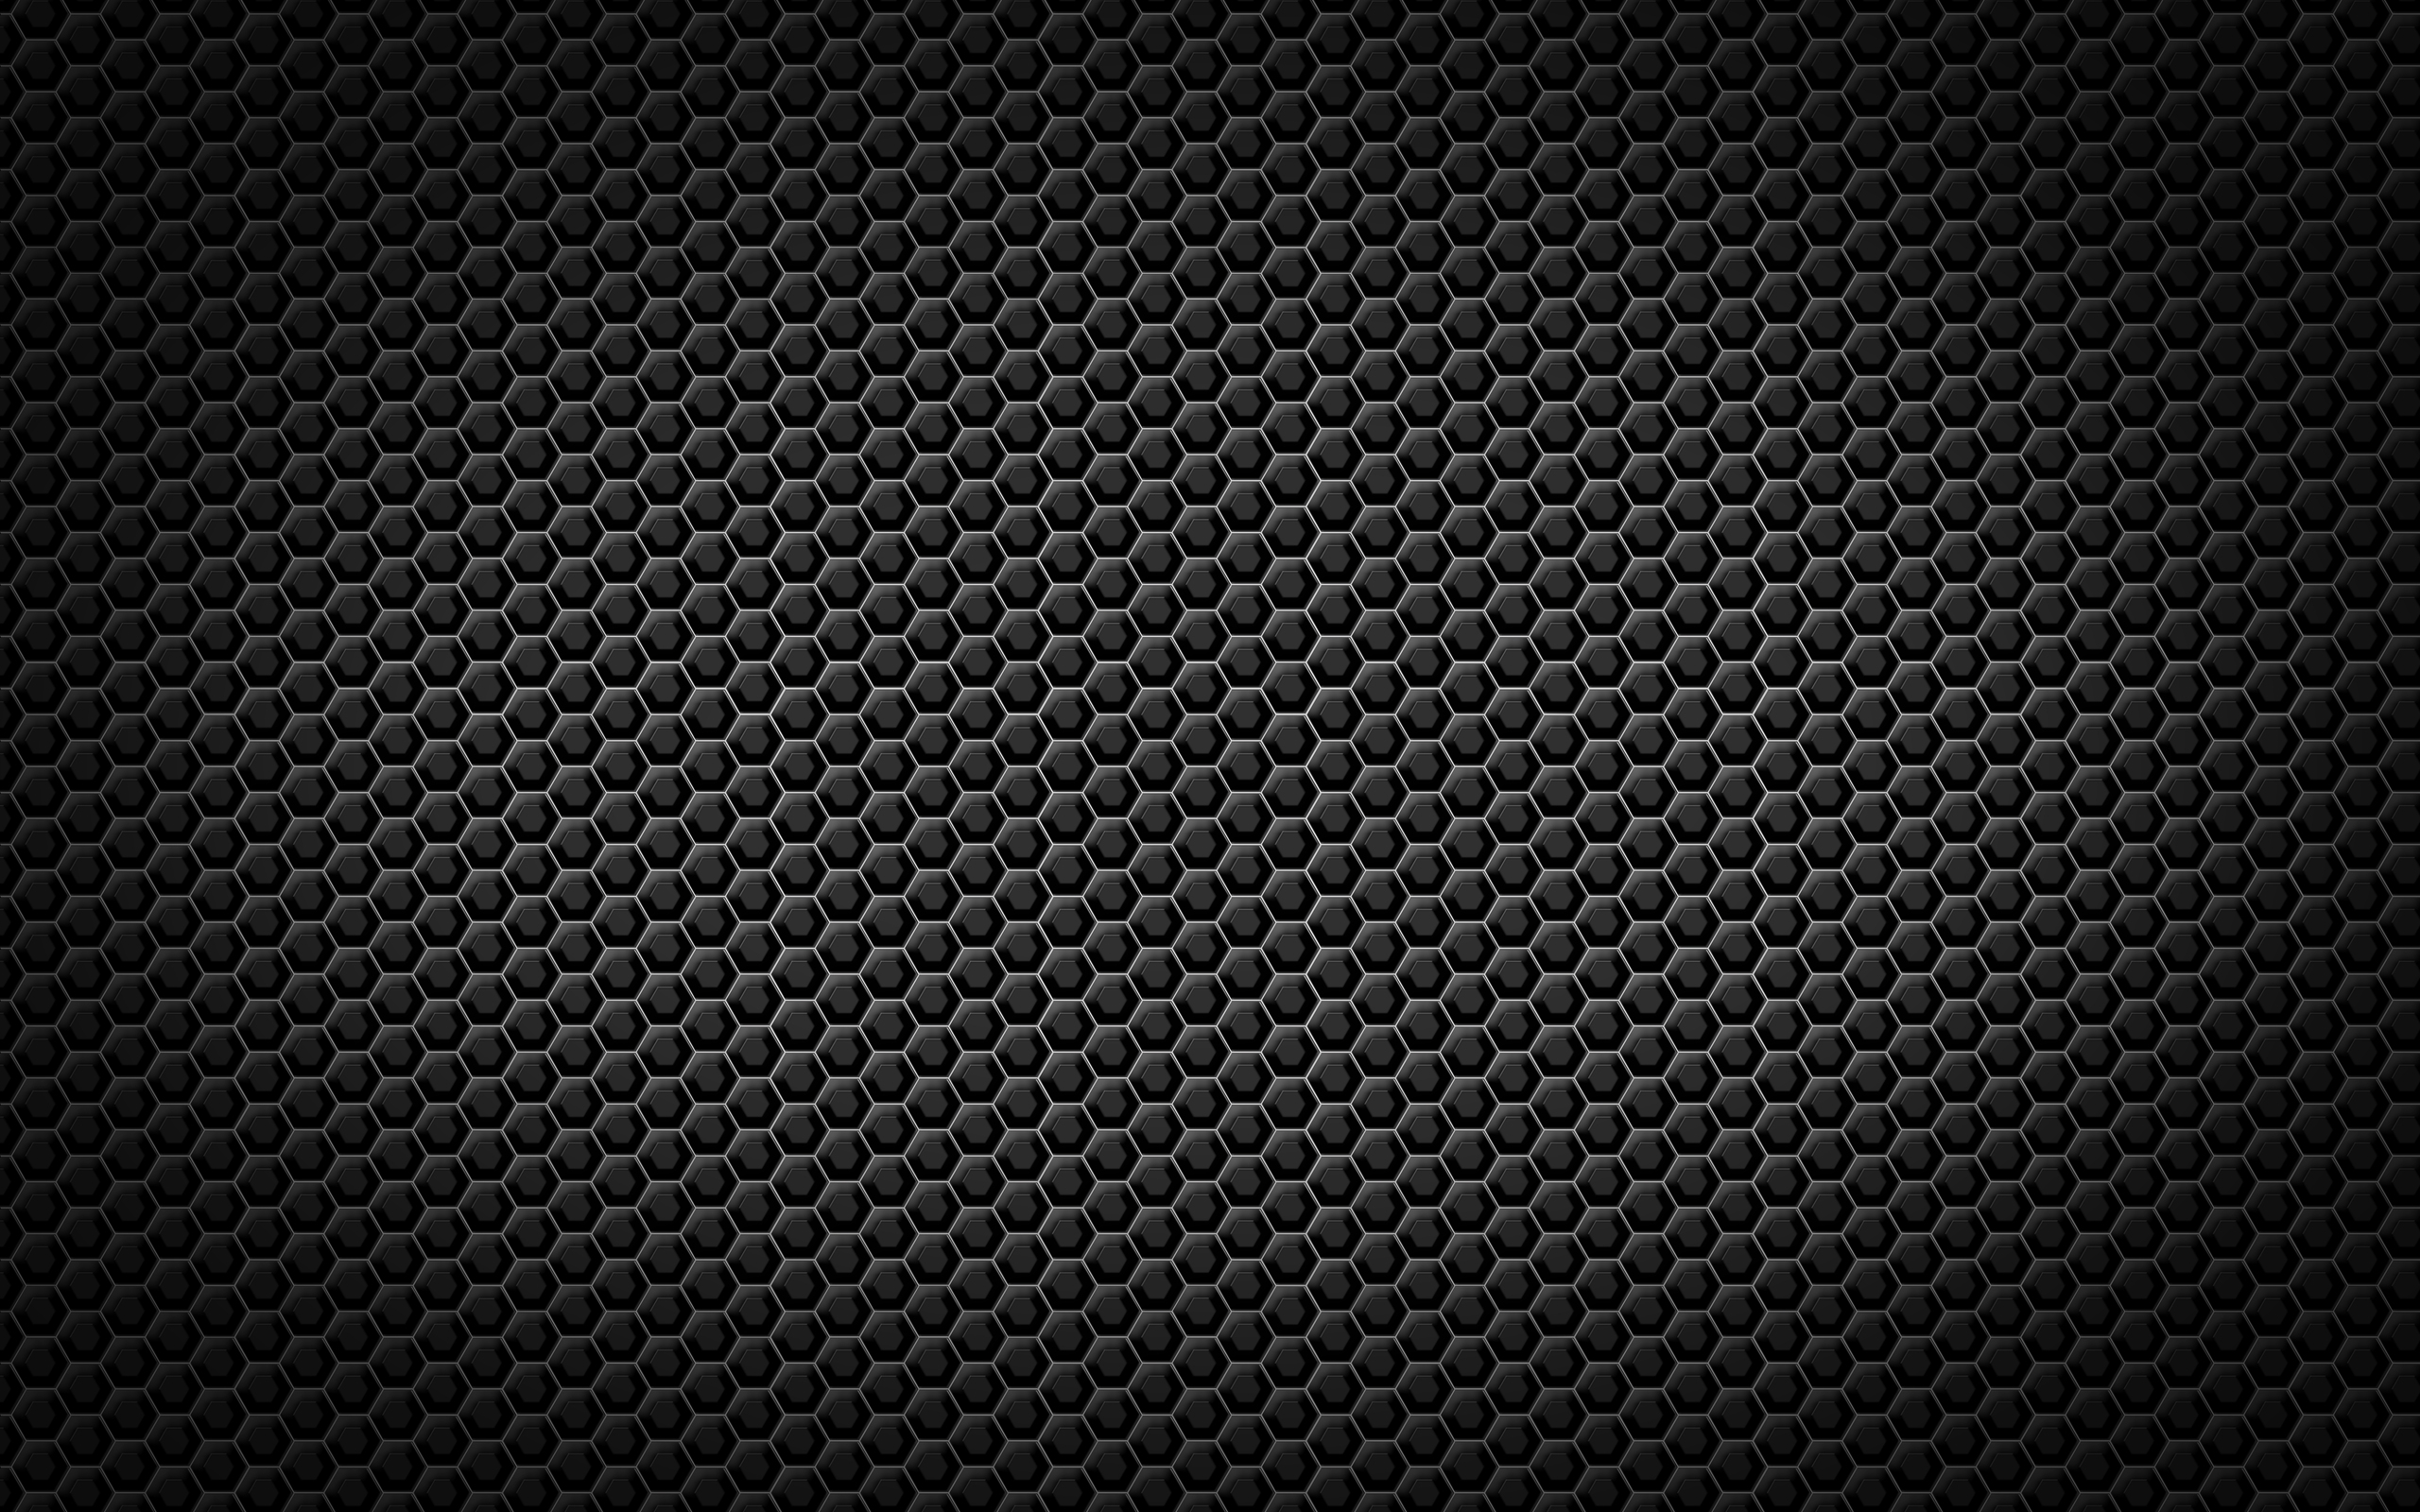 Black Pattern Wallpaper Free